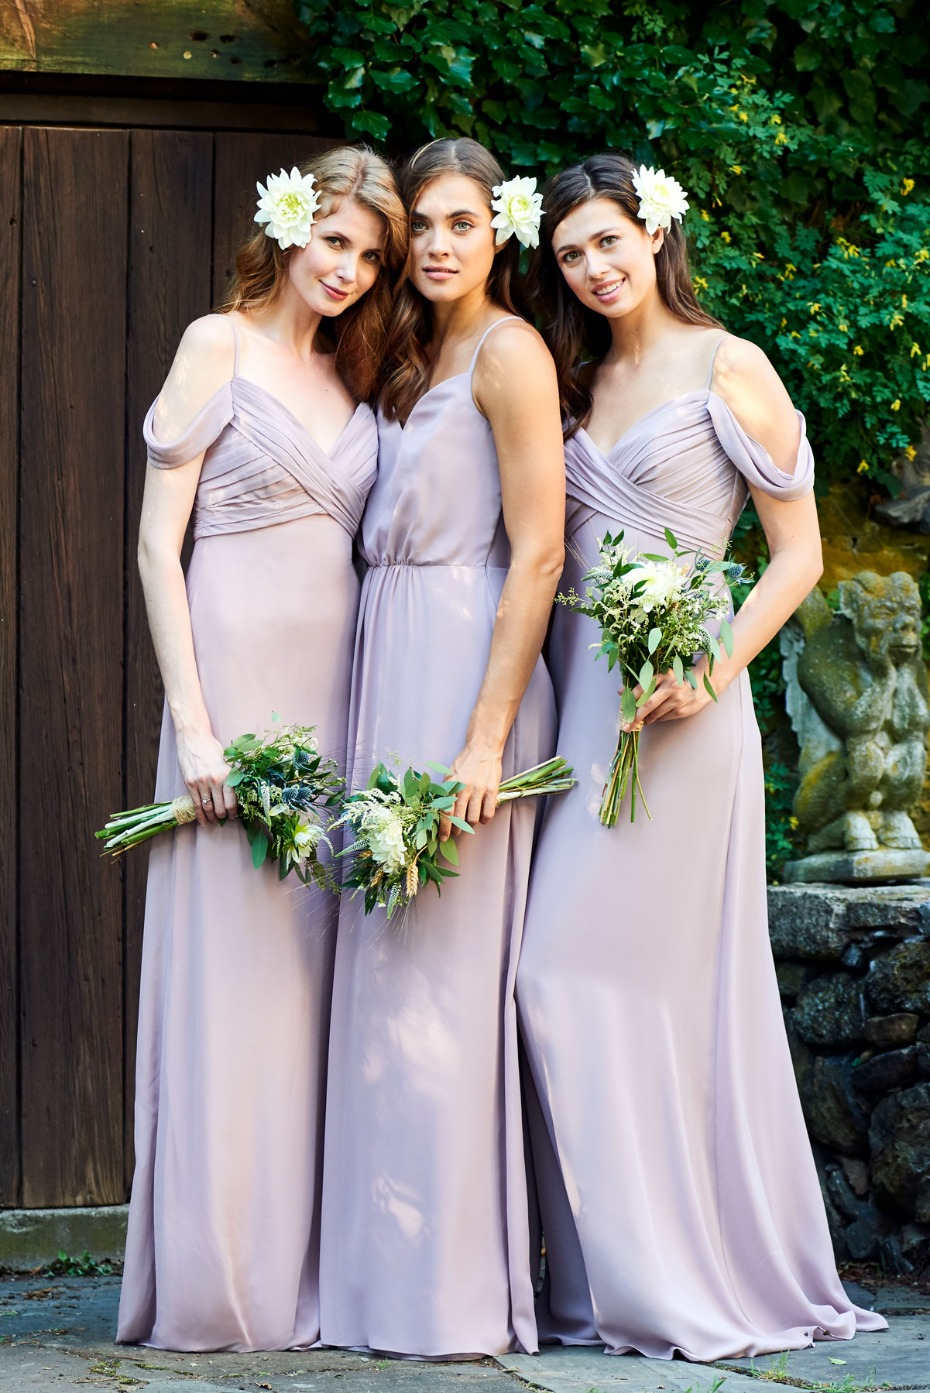 Khloe Jaymes Bridesmaids Dresses in Shades of Purple